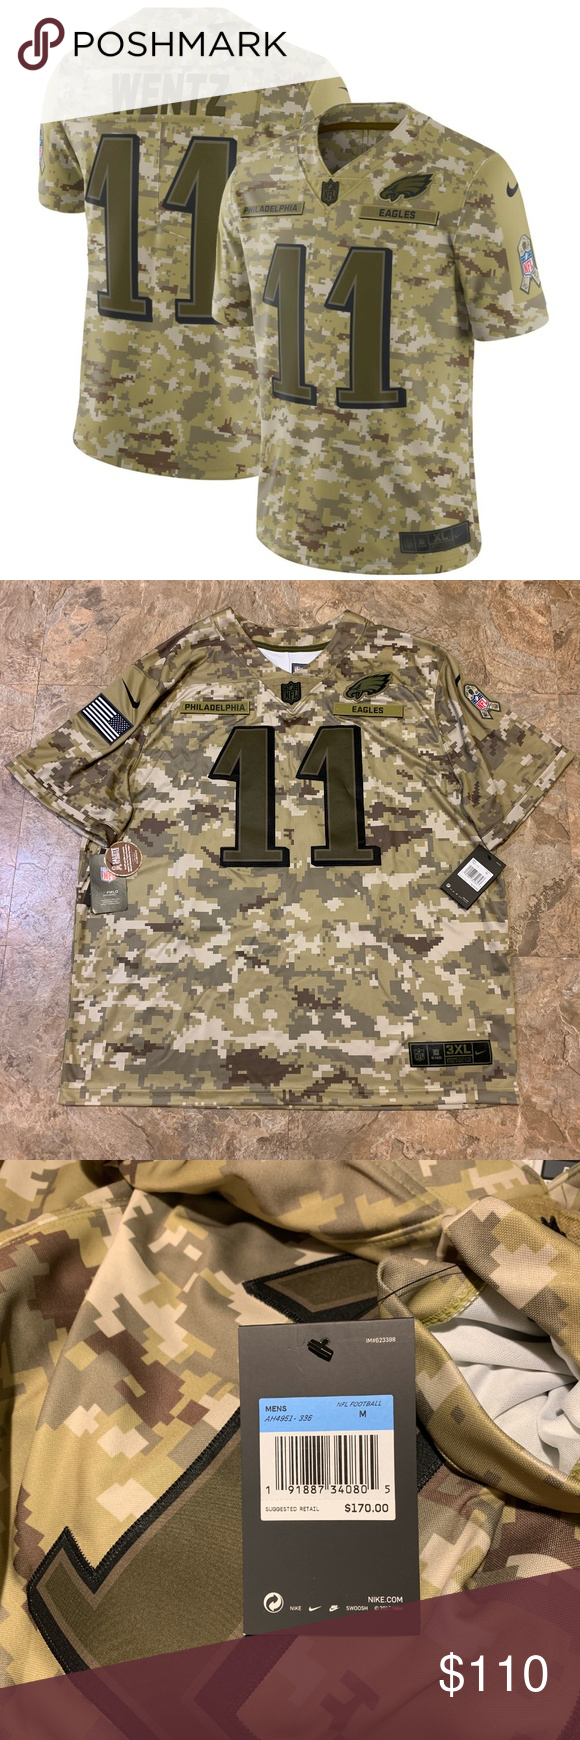 Nike Salute to Service Carson Wentz Eagles Jerseys Brand New with Tags! Nike Salute to Service Limited Philadelphia Eagles Carson Wentz Jerseys Men's Sizes Medium & 3XL Nike Shirts #salutetoservice